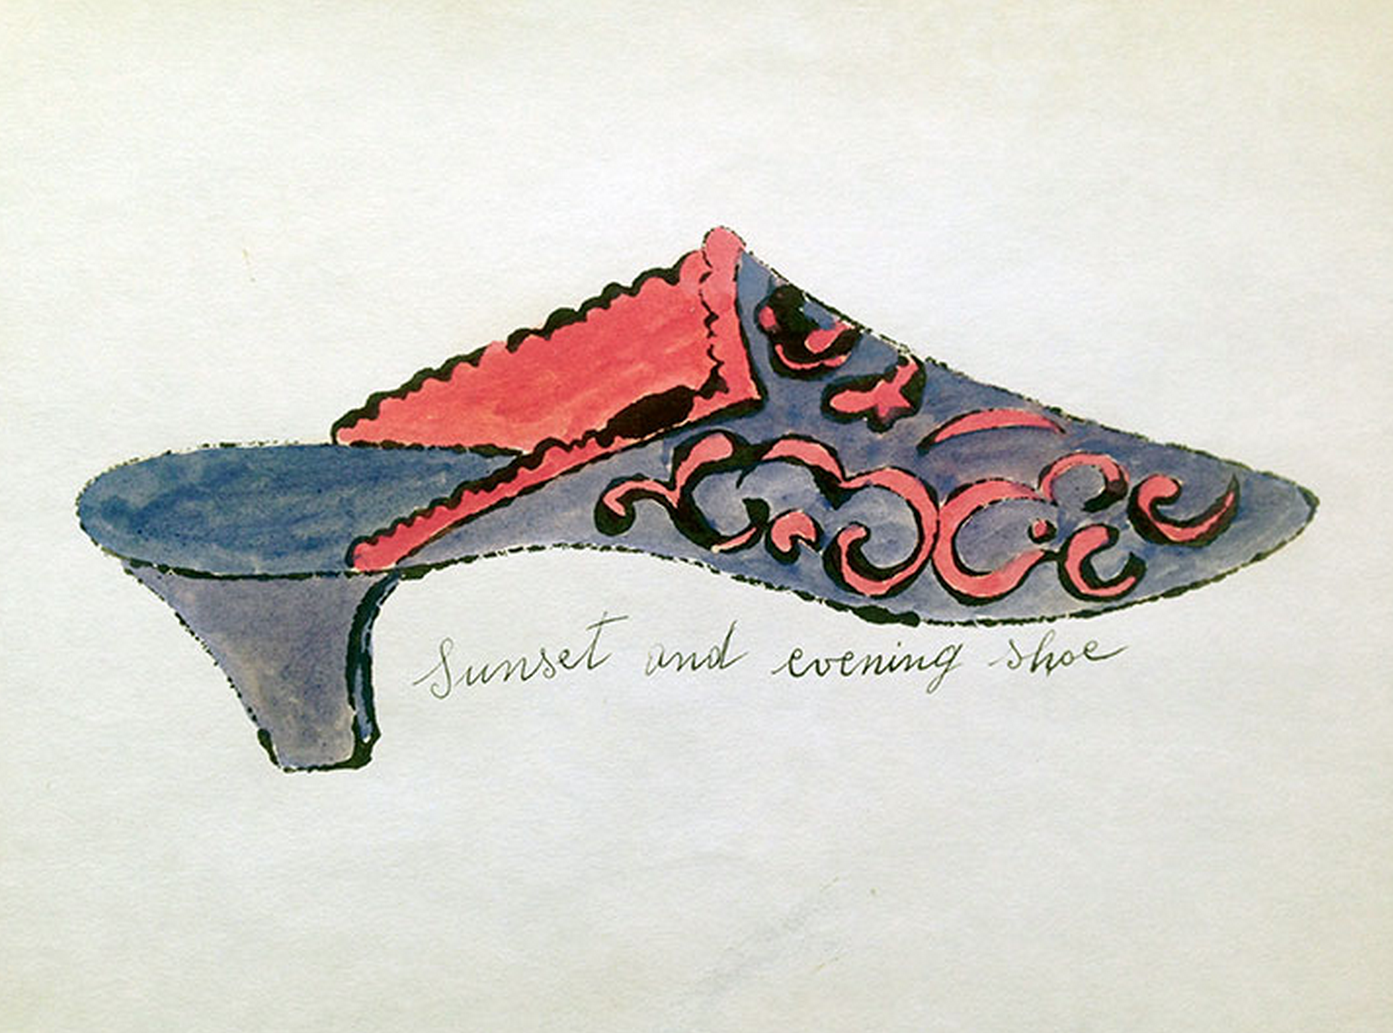 Sunset and Evening Shoe by Andy Warhol